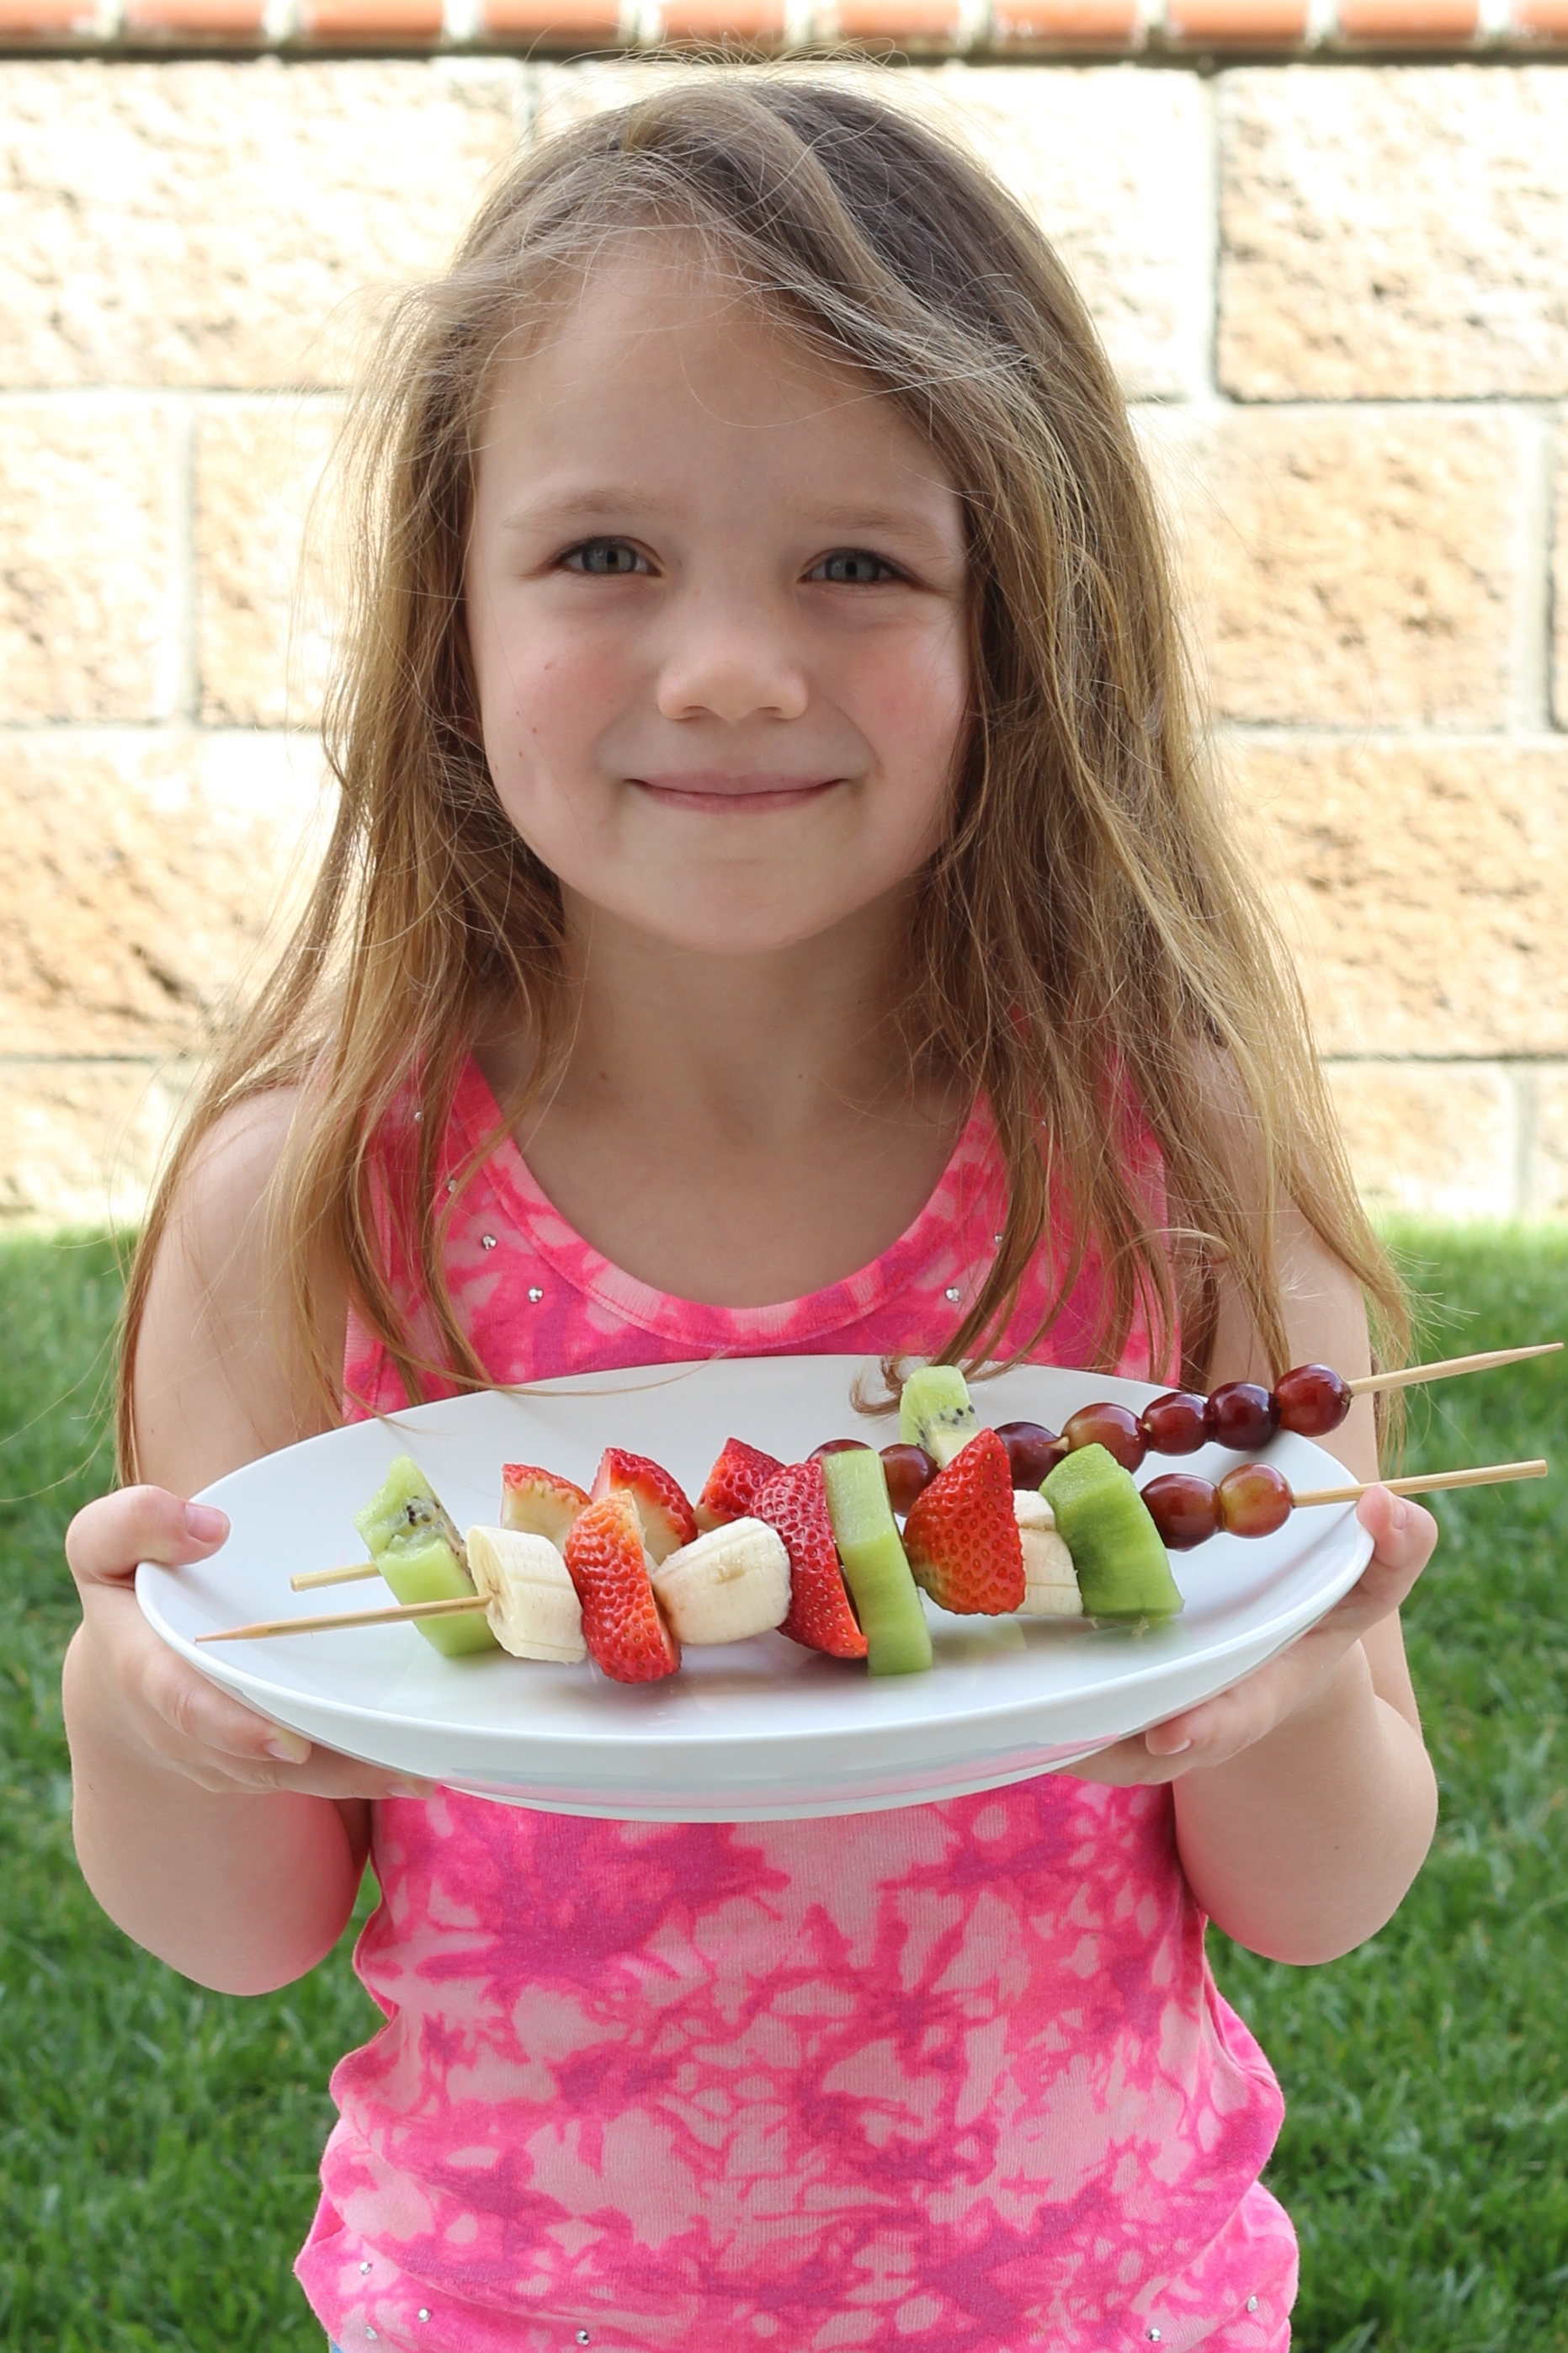 girl holding platter of fruit skewers